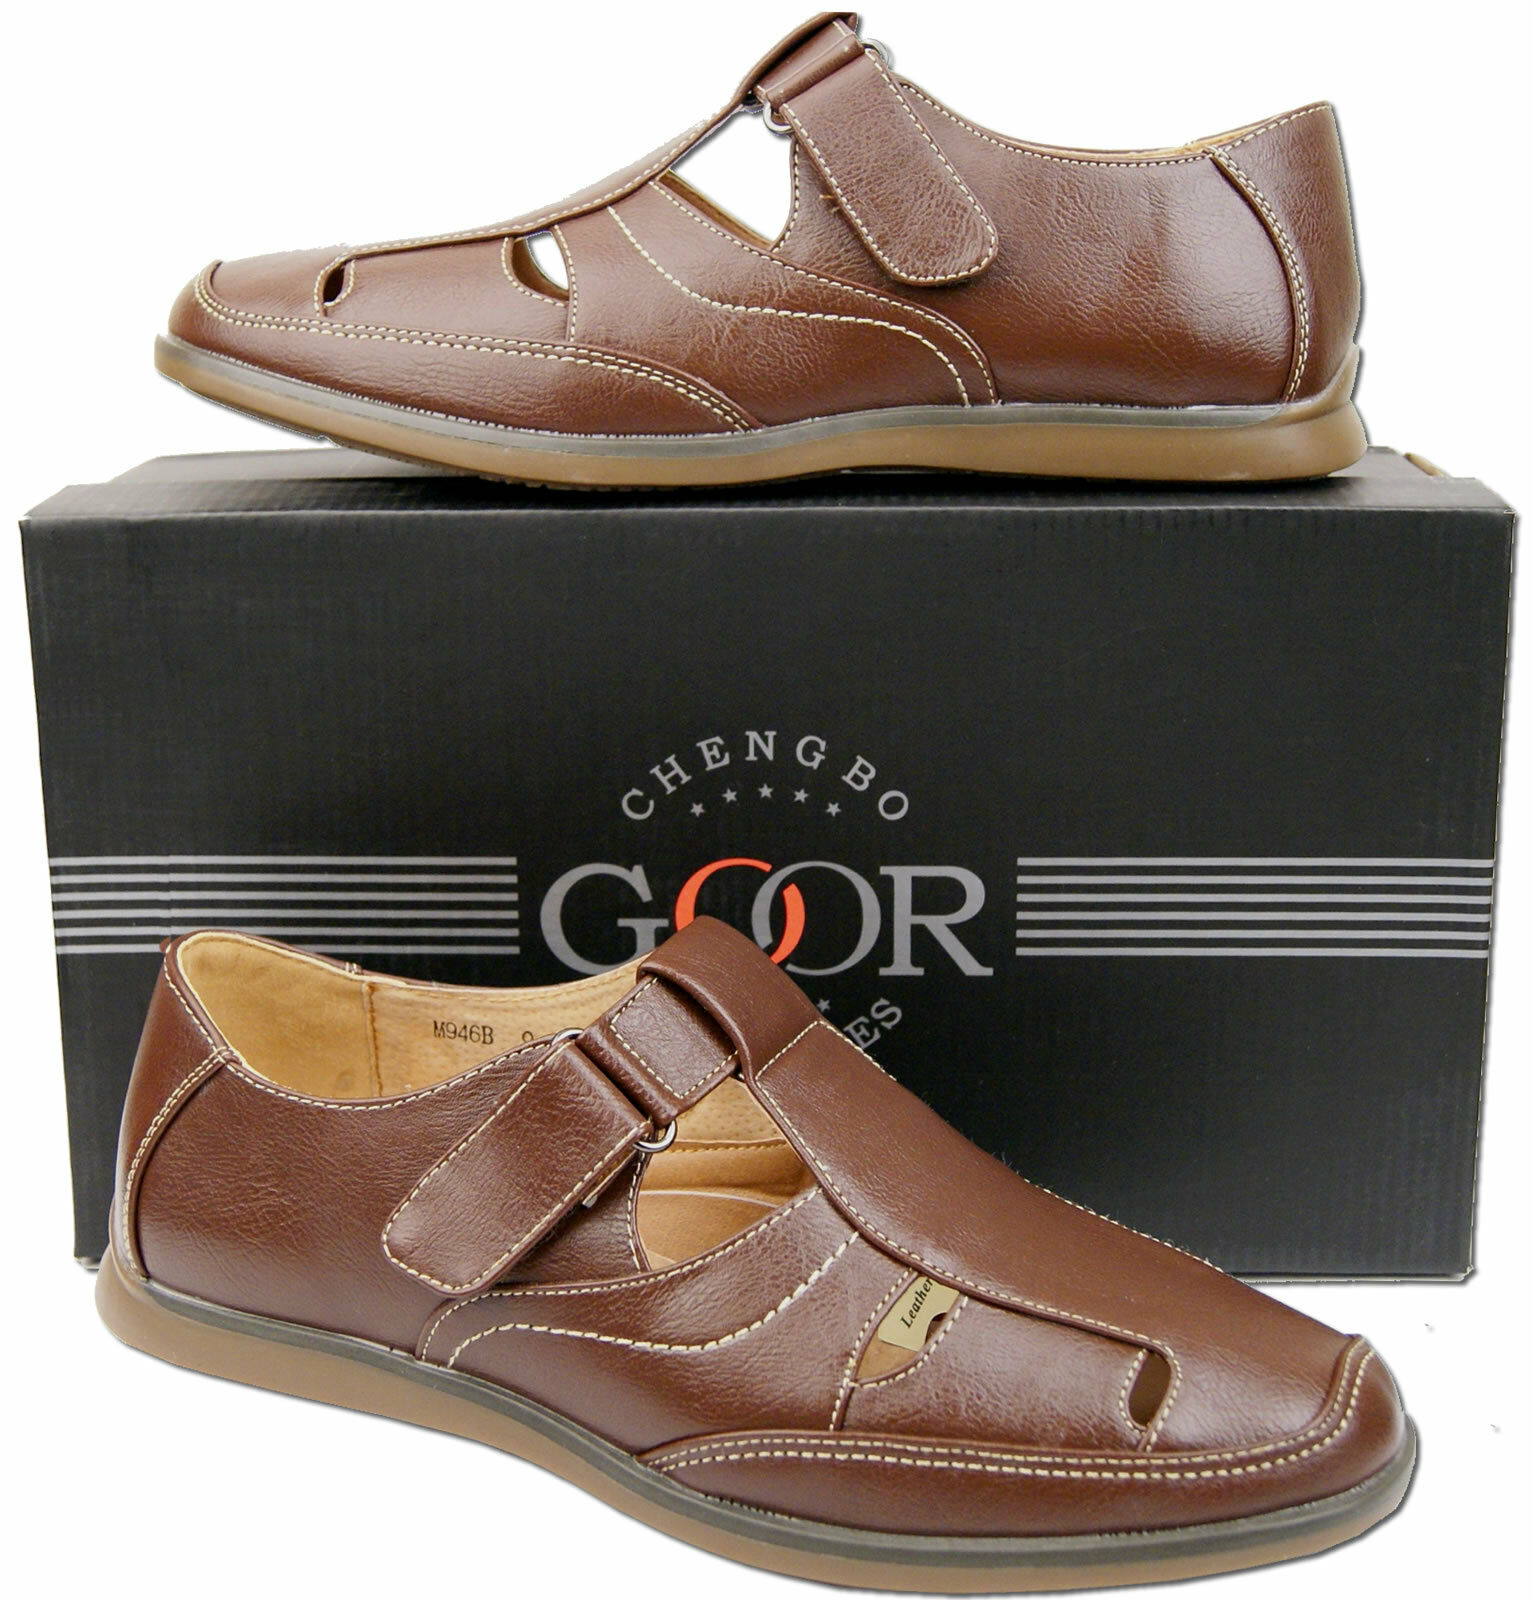 Mens New braun Leather Lined Closed Toe Beach Sandals Free UK Postage